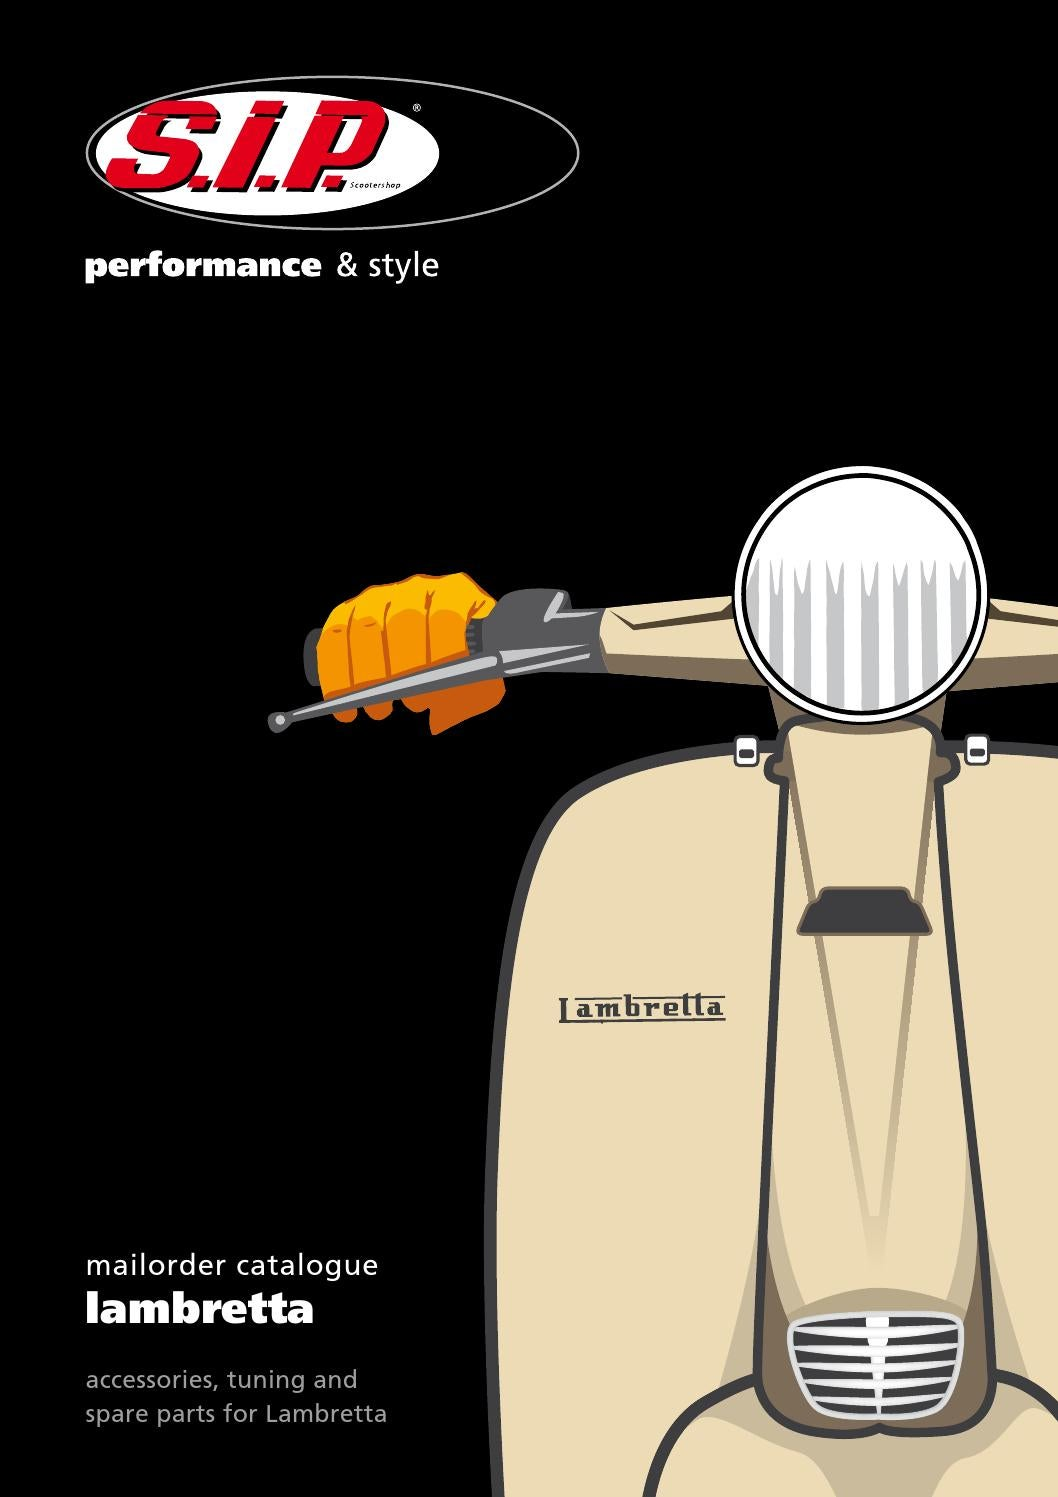 sip lambretta parts catalogue 2013 by sip scootershop gmbh issuu. Black Bedroom Furniture Sets. Home Design Ideas